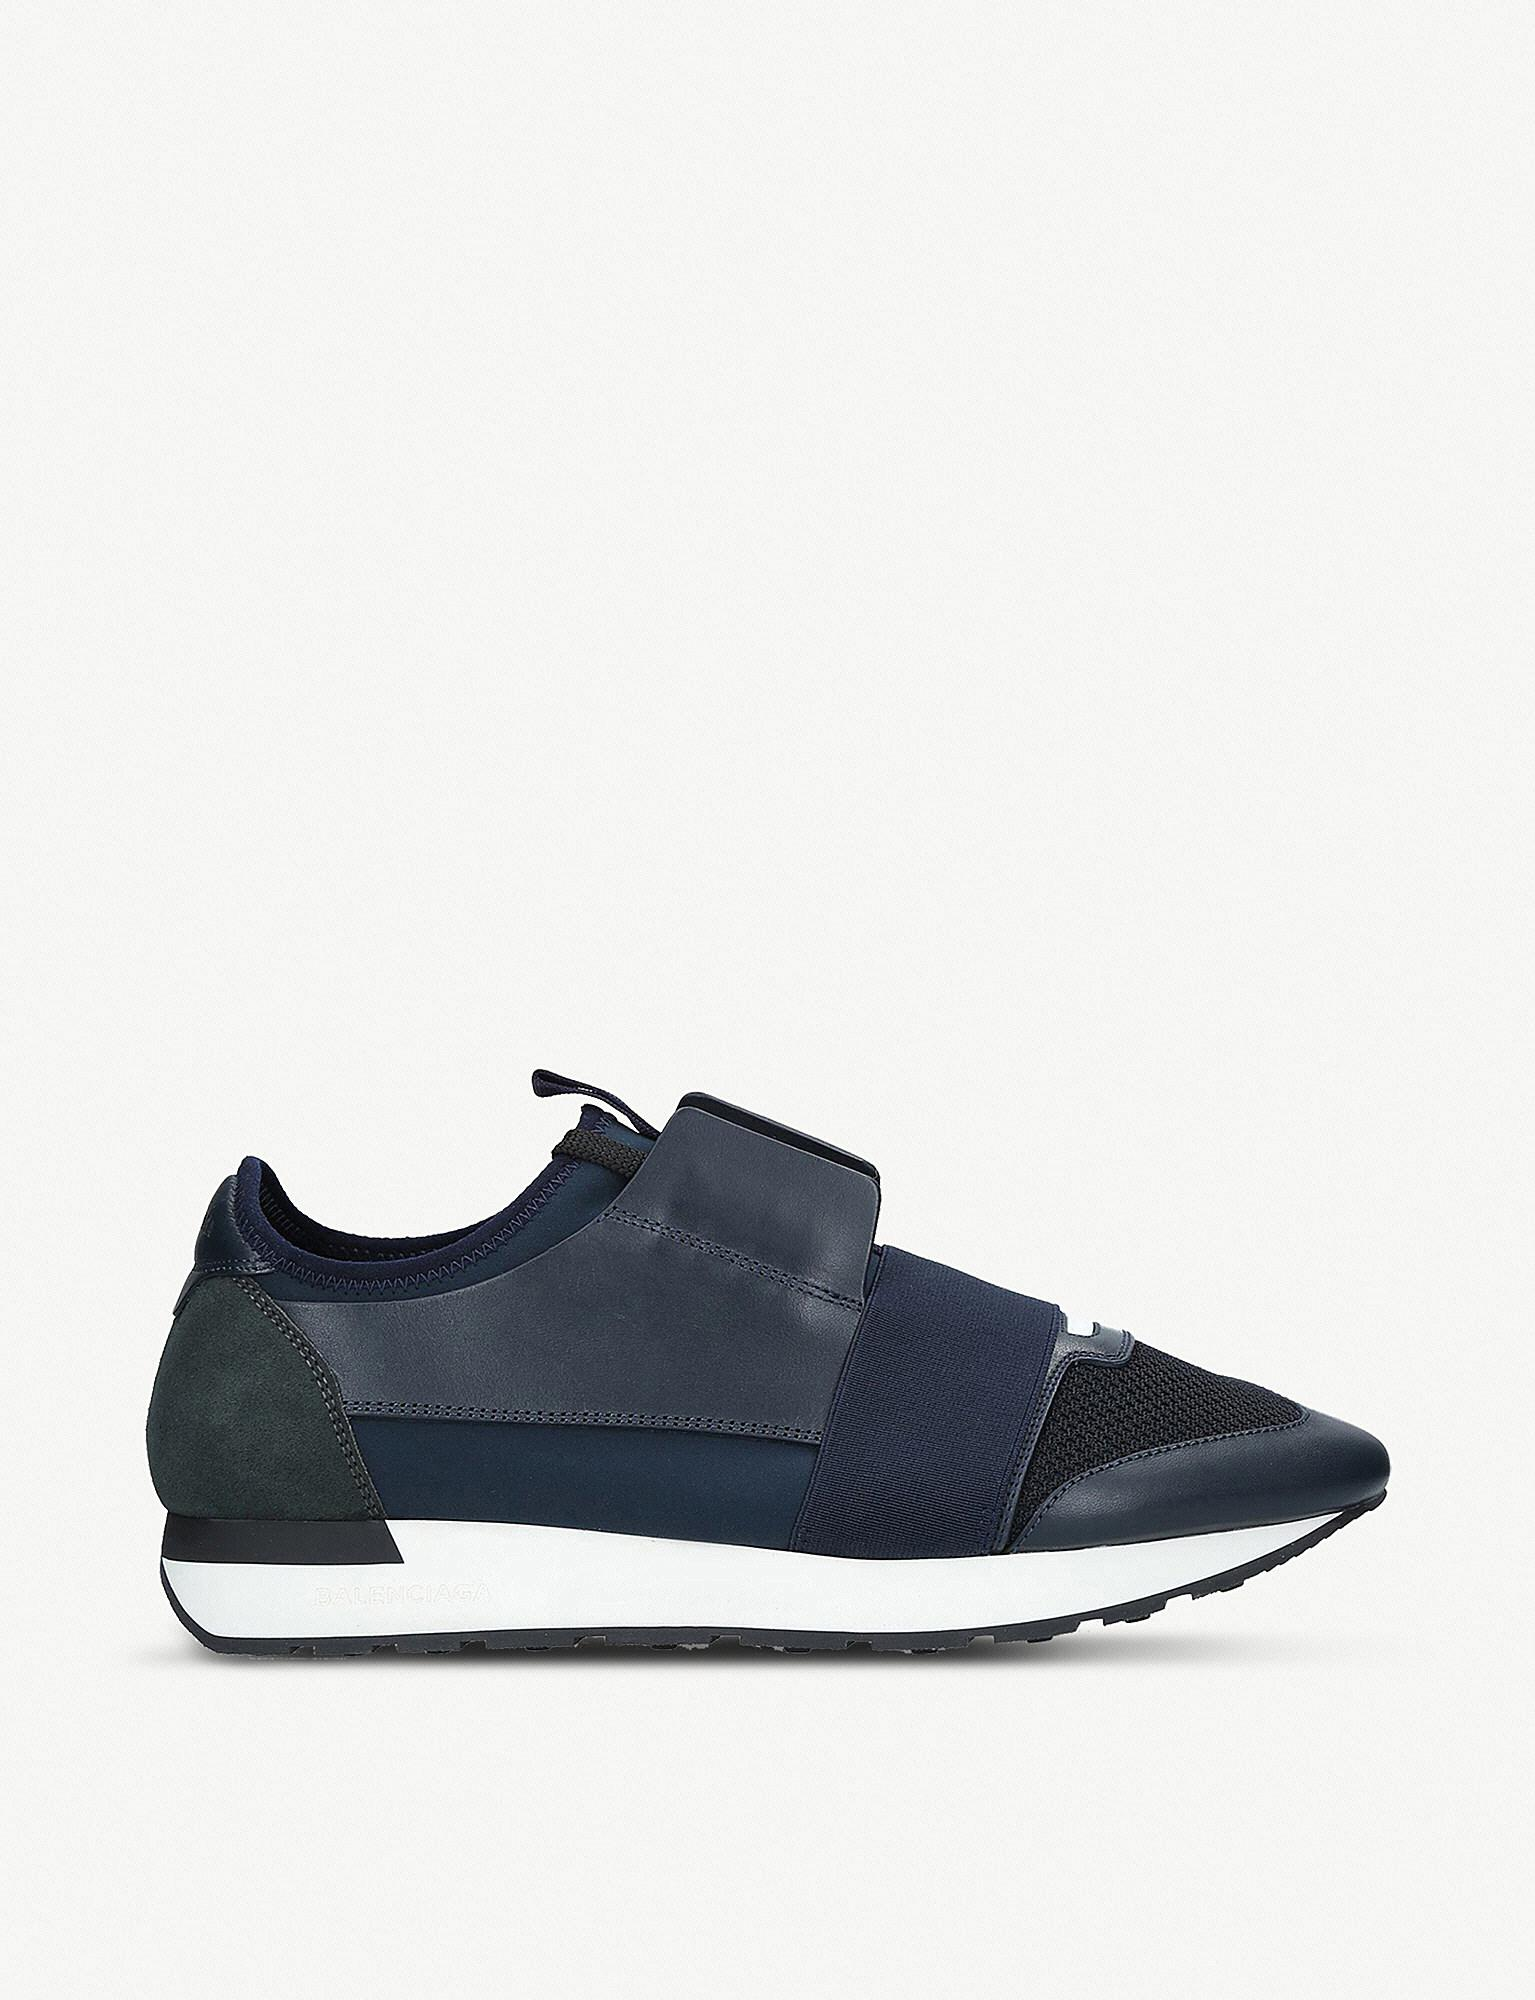 d7eb76fd66a5 Balenciaga Mens Blue Striped Race Runners Leather Sneakers in Blue ...